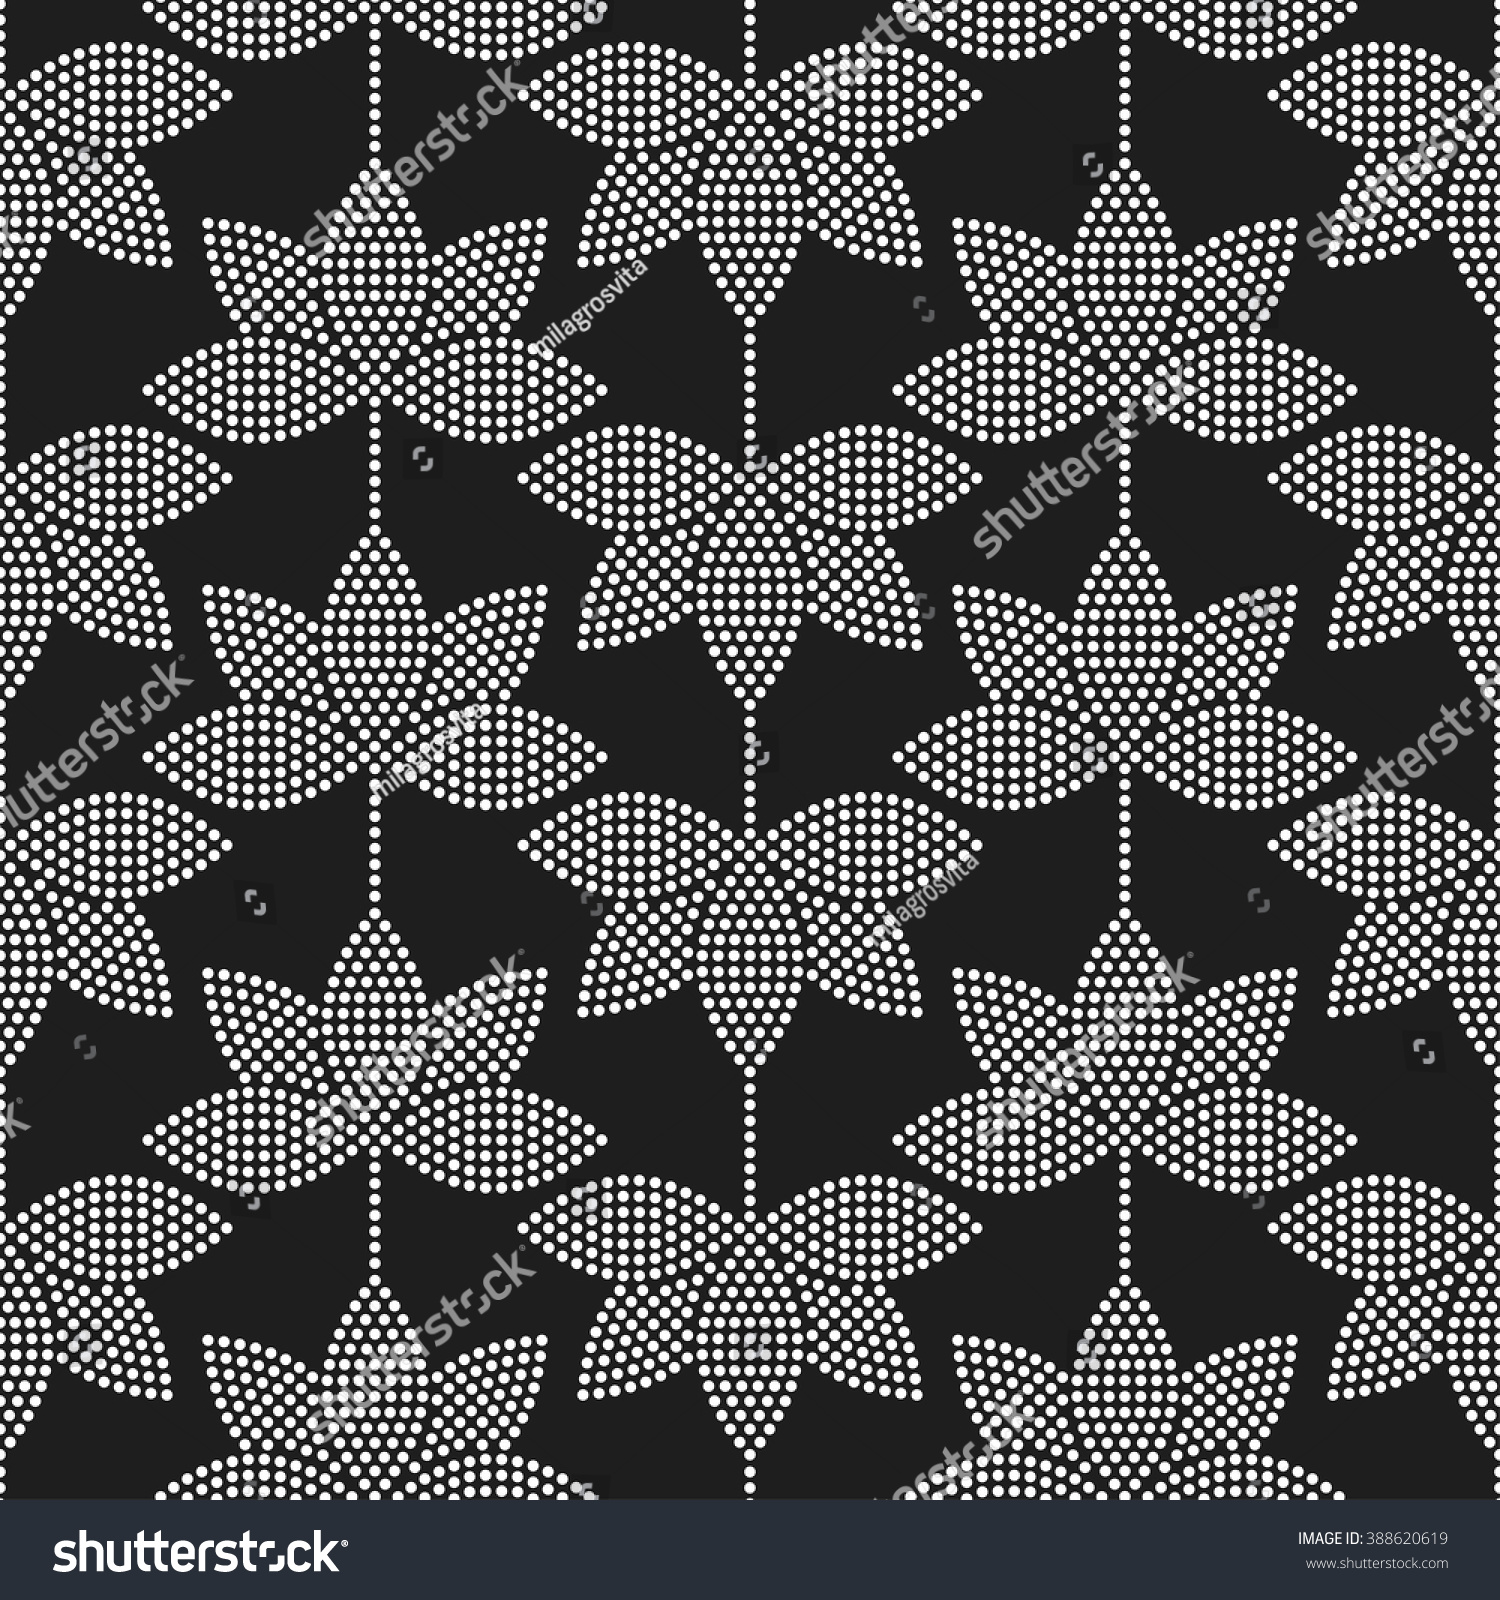 Yoga pattern background seamless pattern with five petals lotus flower - Seamless Tiled Black And White Mosaic Background Of Lotus Flower In Garlands Dotted Pattern